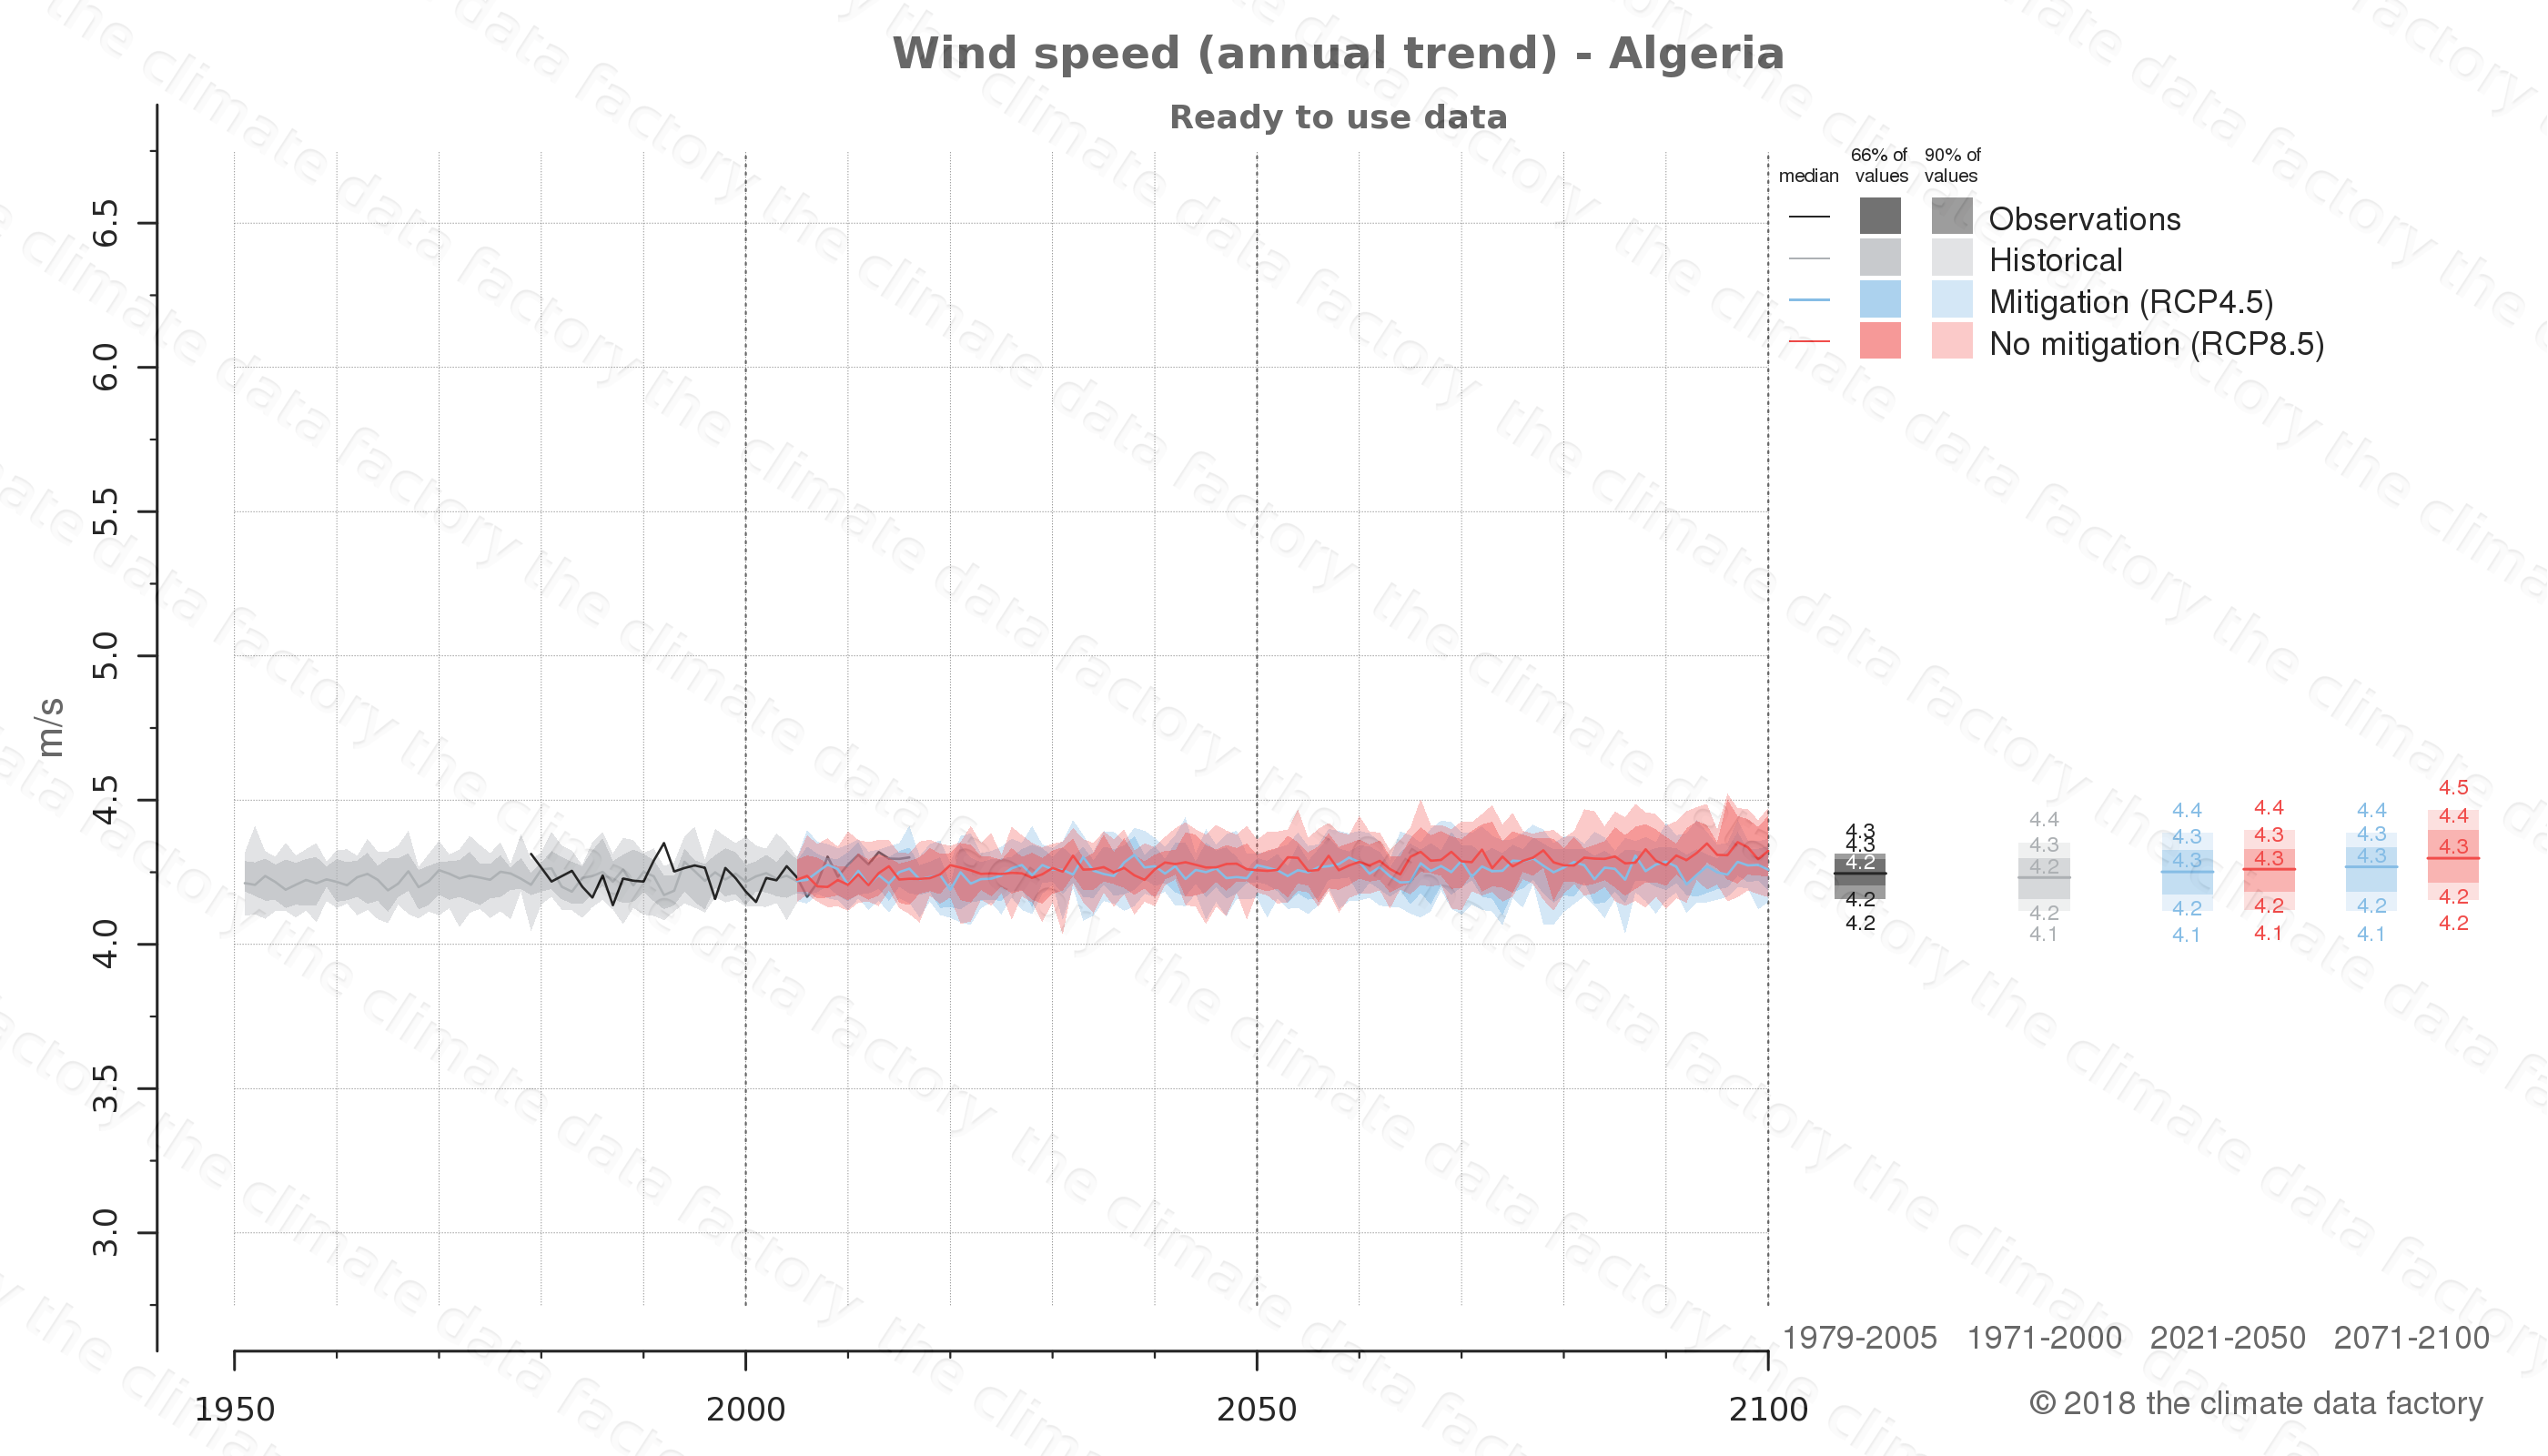 climate change data policy adaptation climate graph country data wind speed algeria africa